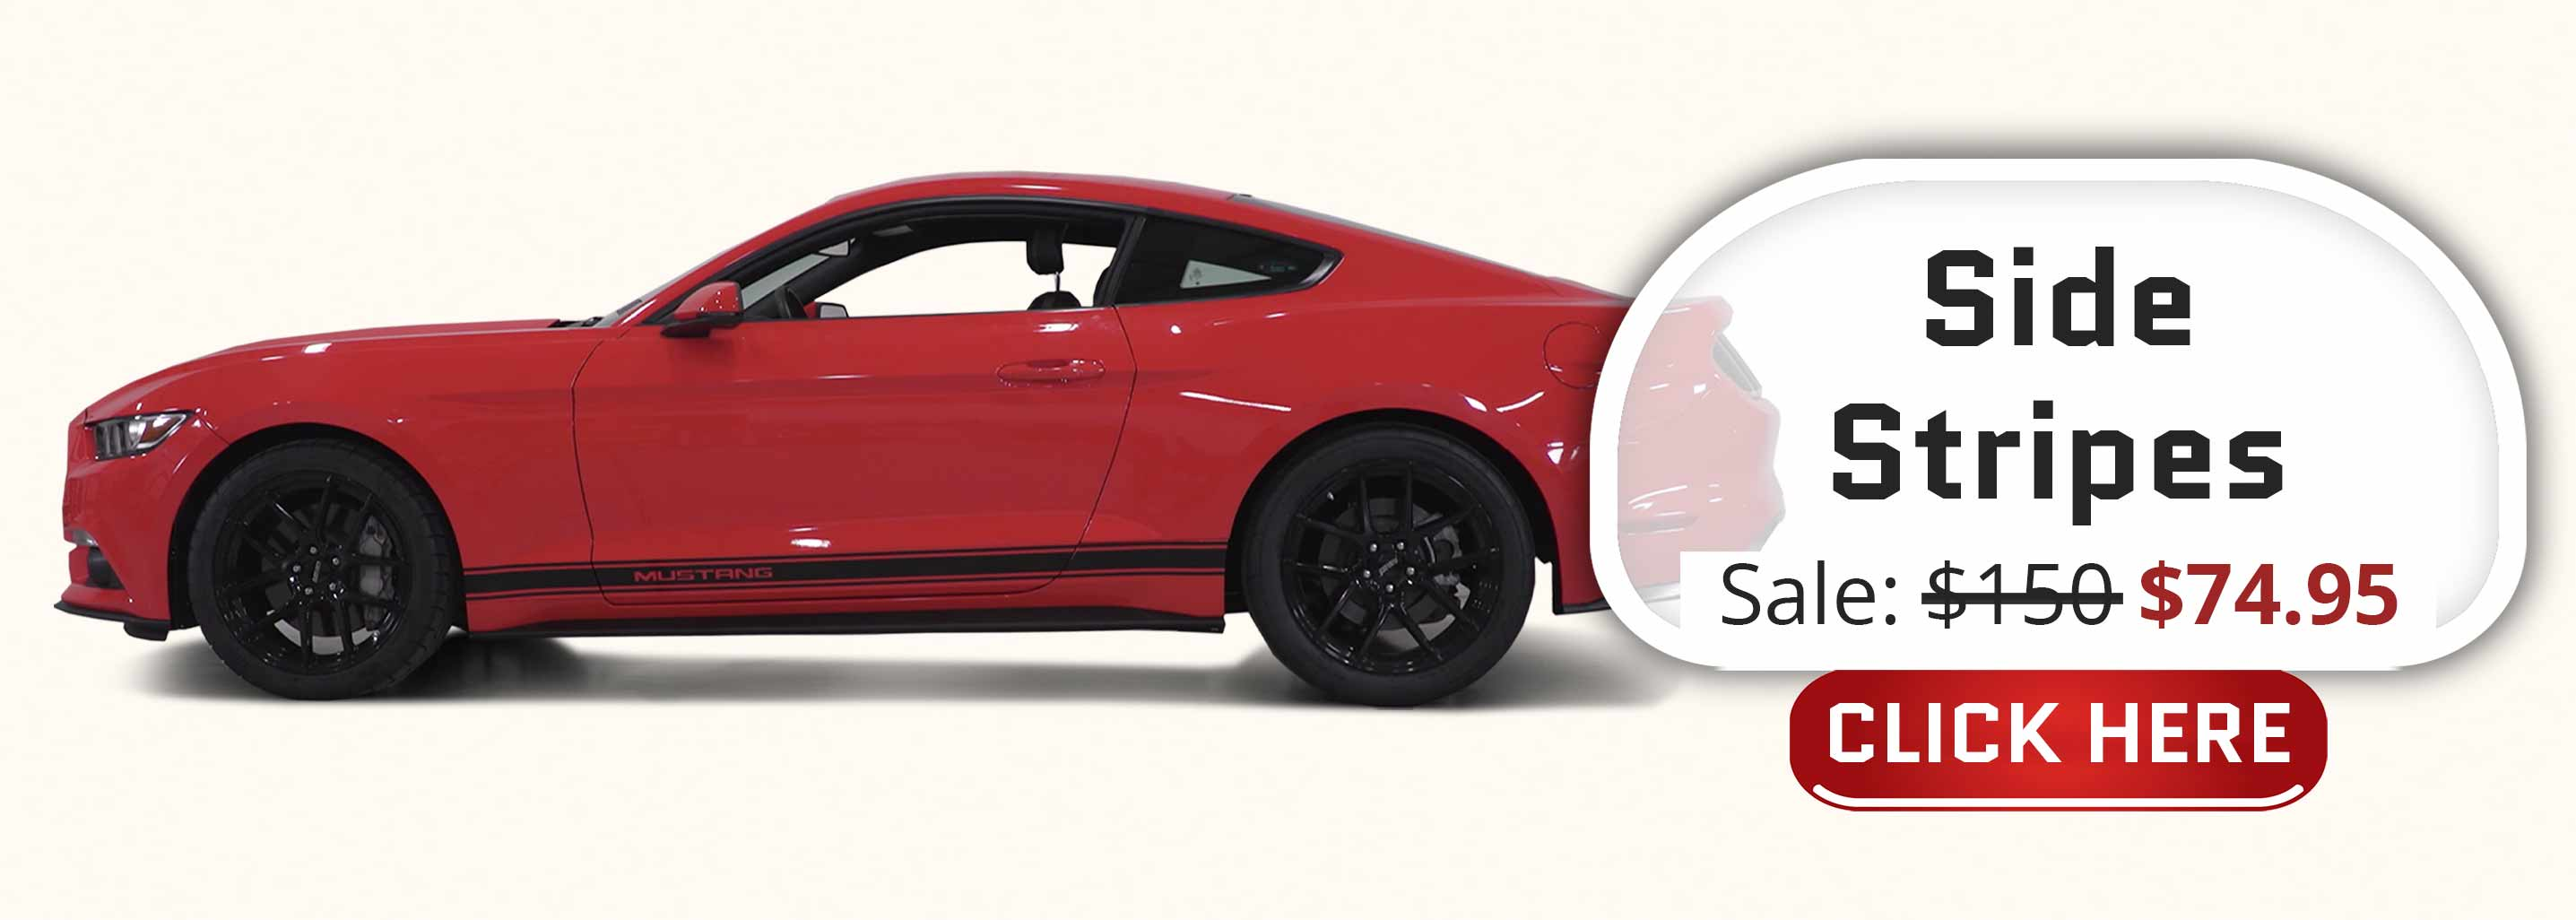 ford mustang side stripes with custom mustang text pre-cut fender decals